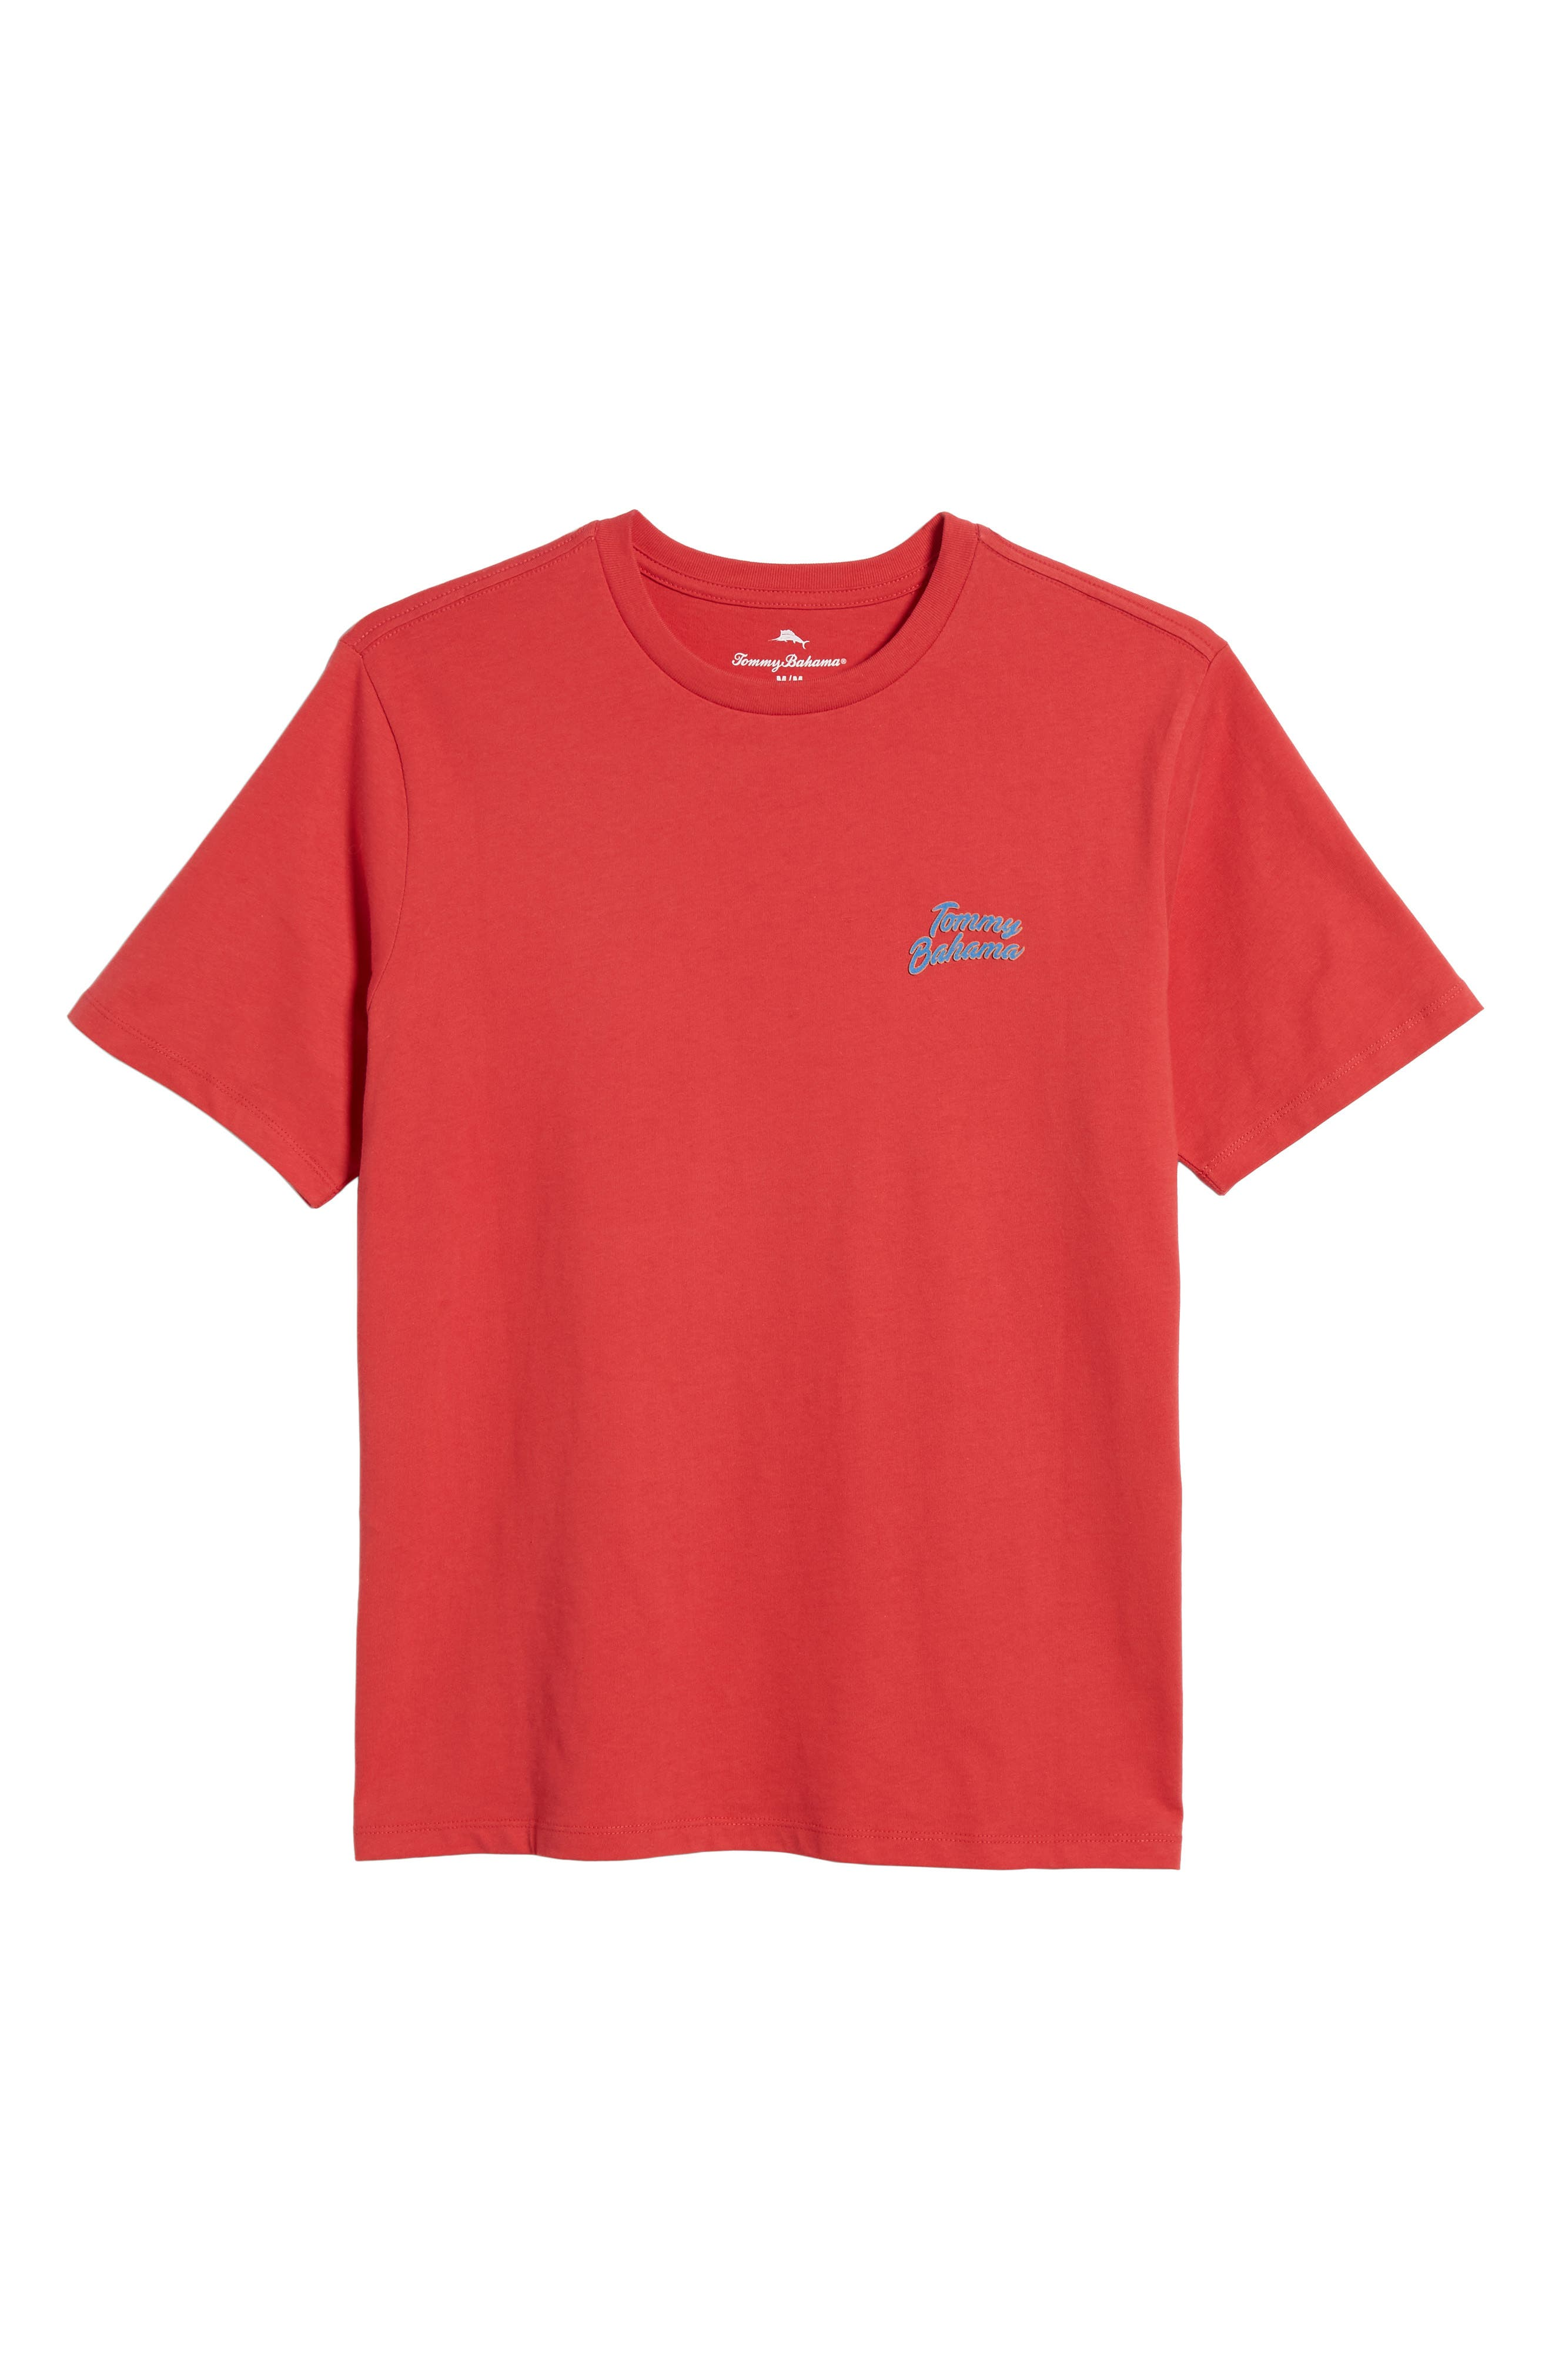 Thirst Base Graphic T-Shirt,                             Alternate thumbnail 6, color,                             LUCKY RED